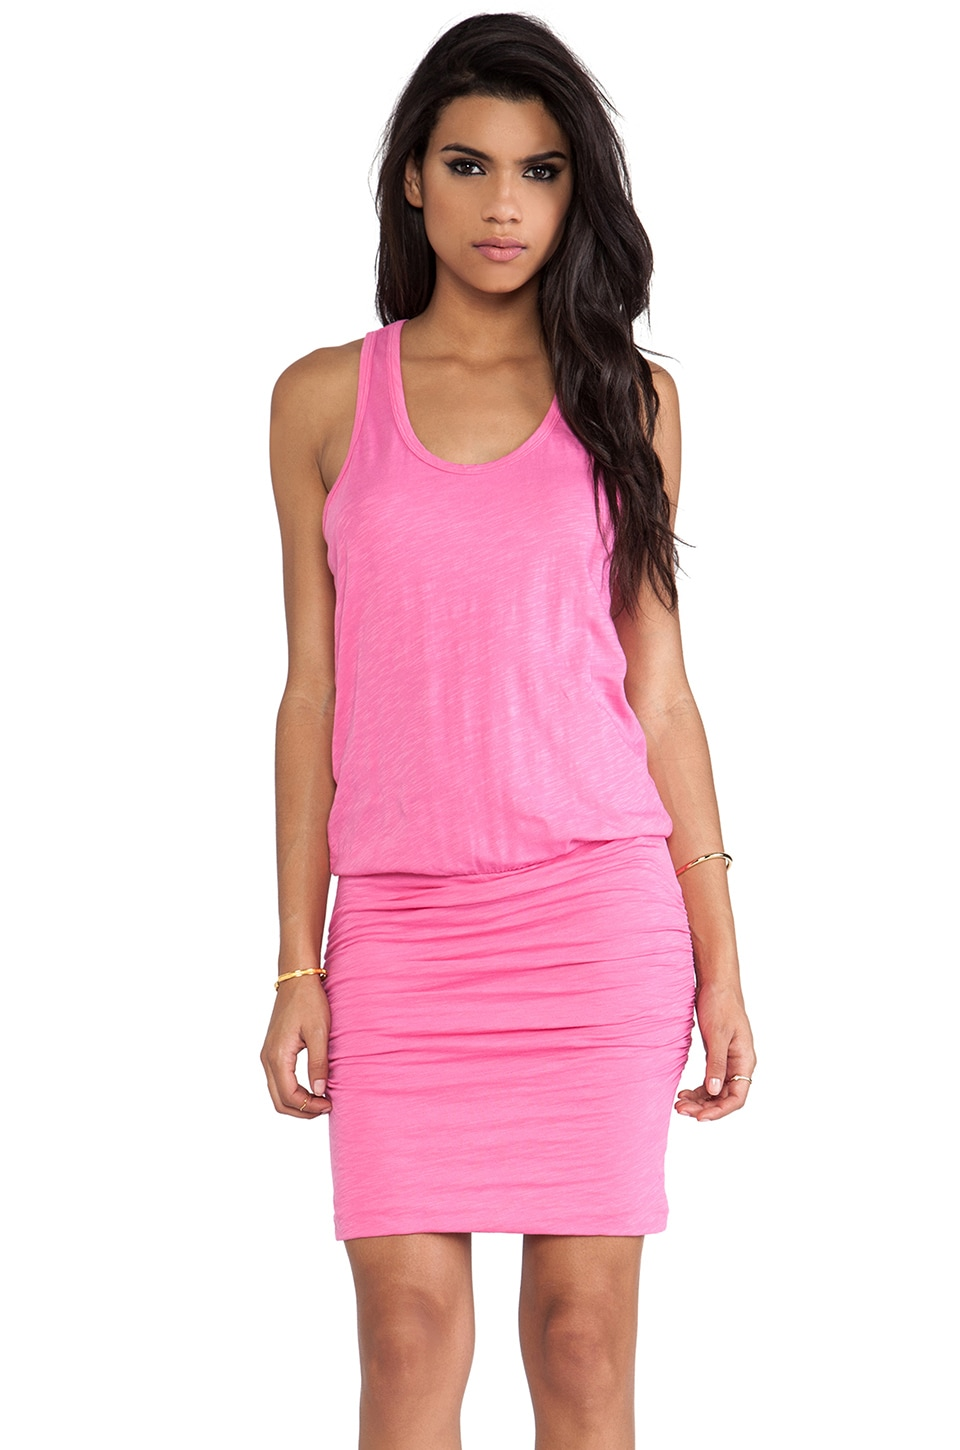 SUNDRY Rushed Tank Dress in Caranation